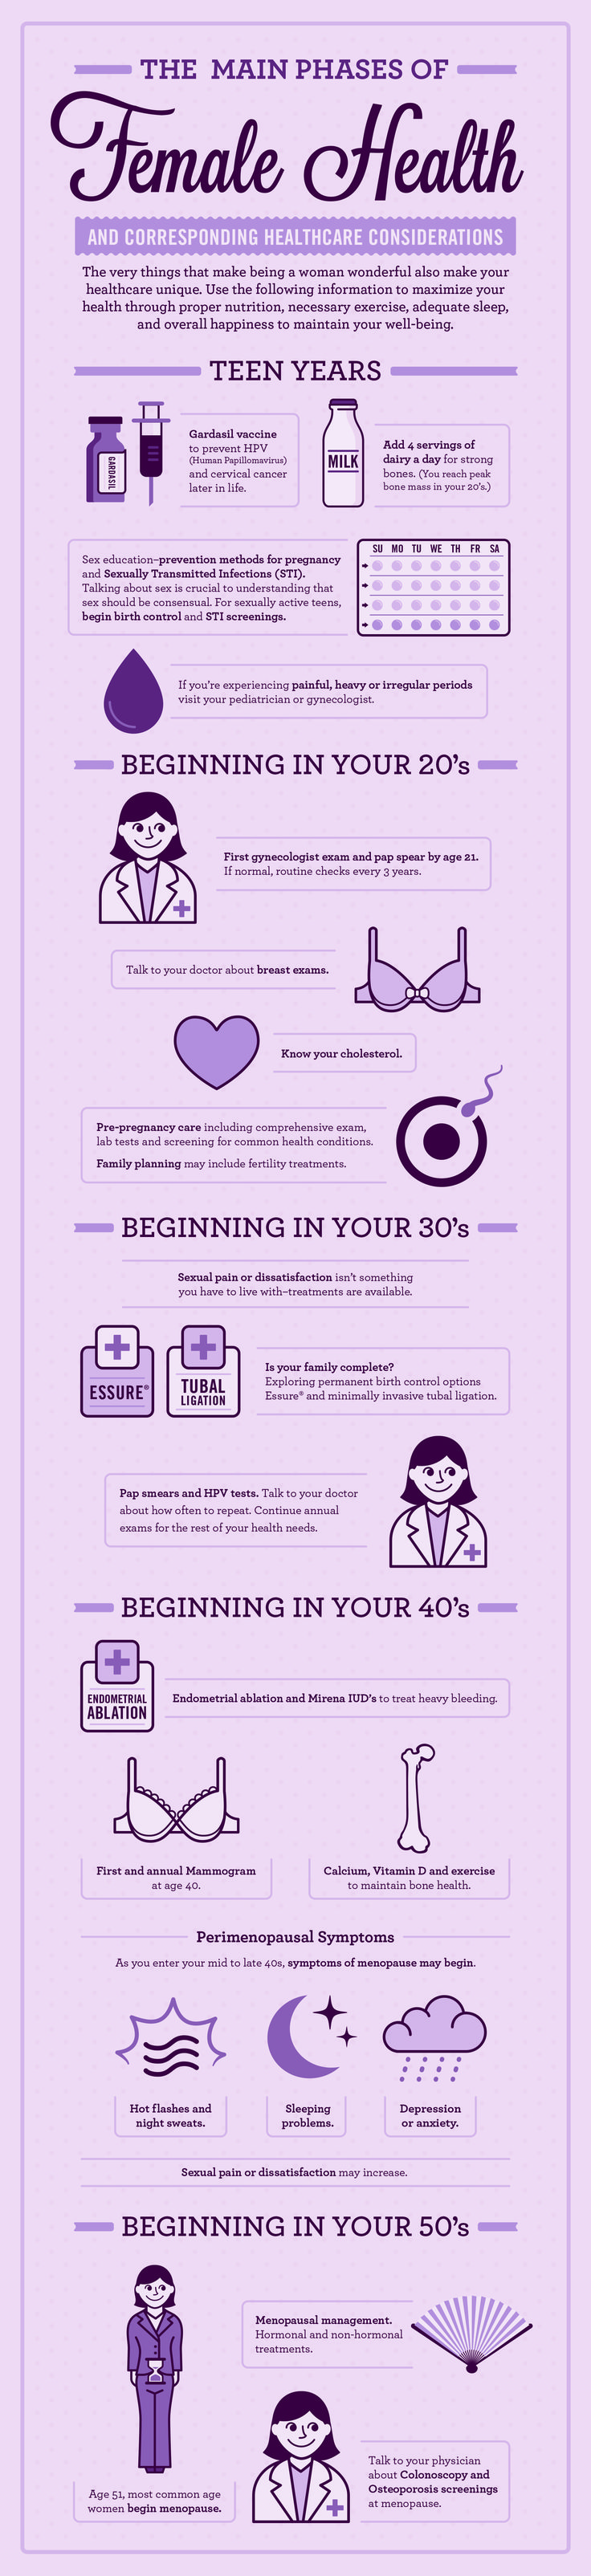 Well-being is an everyday activity and we must understand and take care of things that happen at different stages of life. This infographic shows phases of women's health and how they must keep in mind certain things to do at each phase.